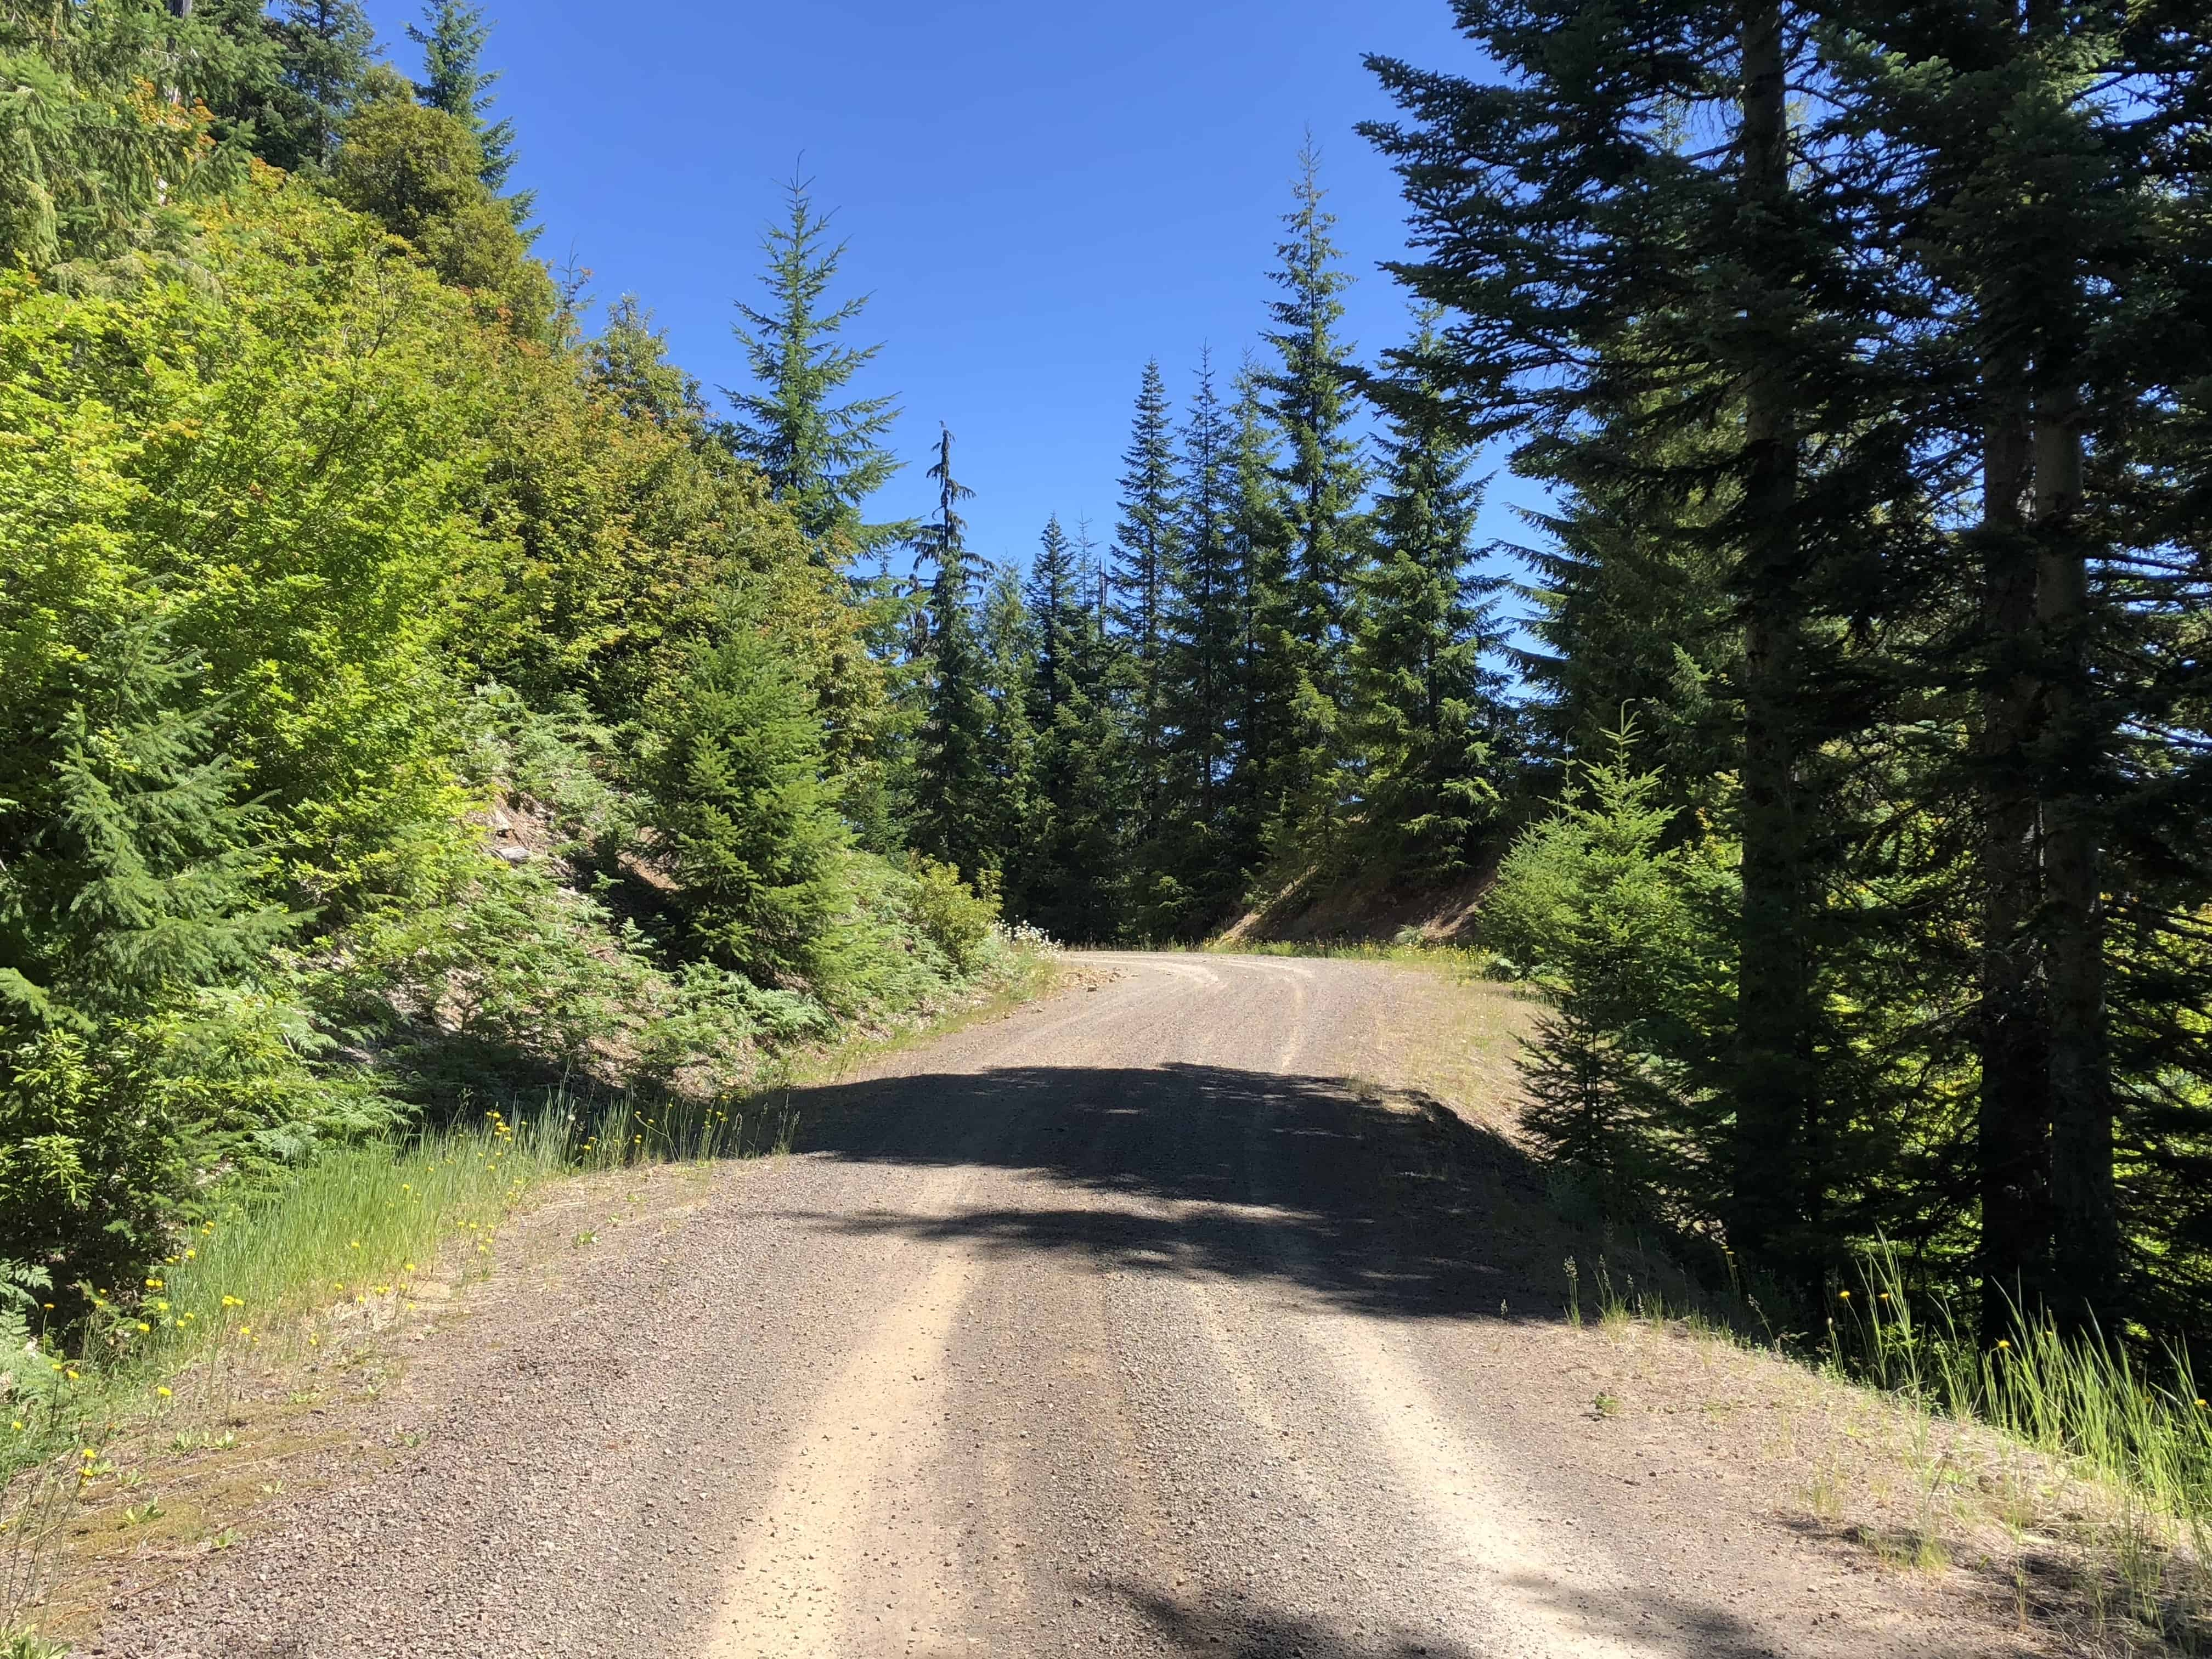 NF 1133 summit, Willamette National Forest